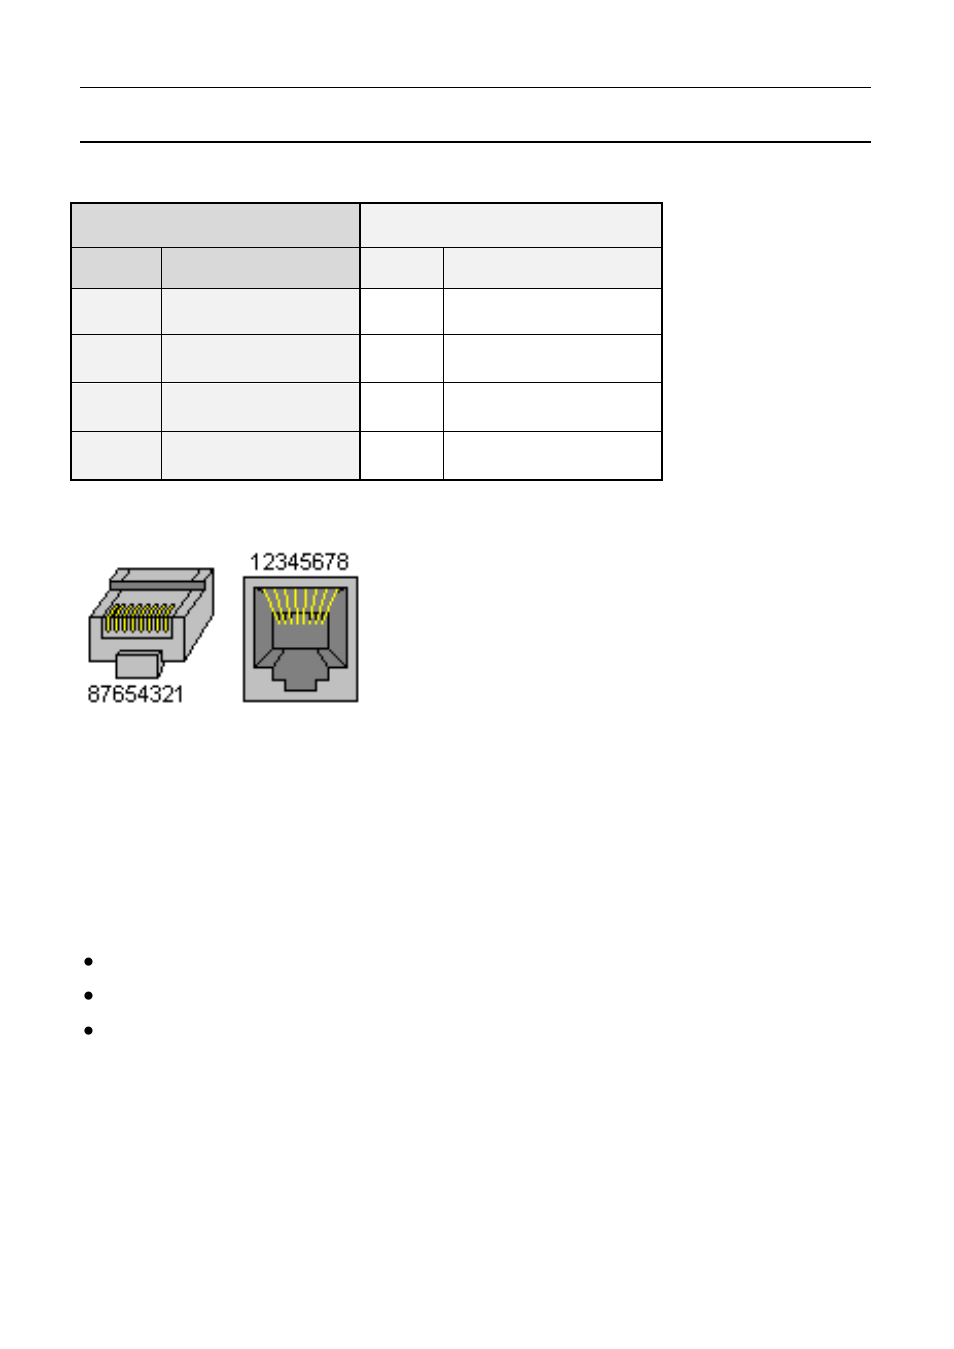 Ethernet Wiring Diagram Tx Rx Content Resource Of Images Gigabit Ether Wire Somurich Com Rh Rj45 Fast Network